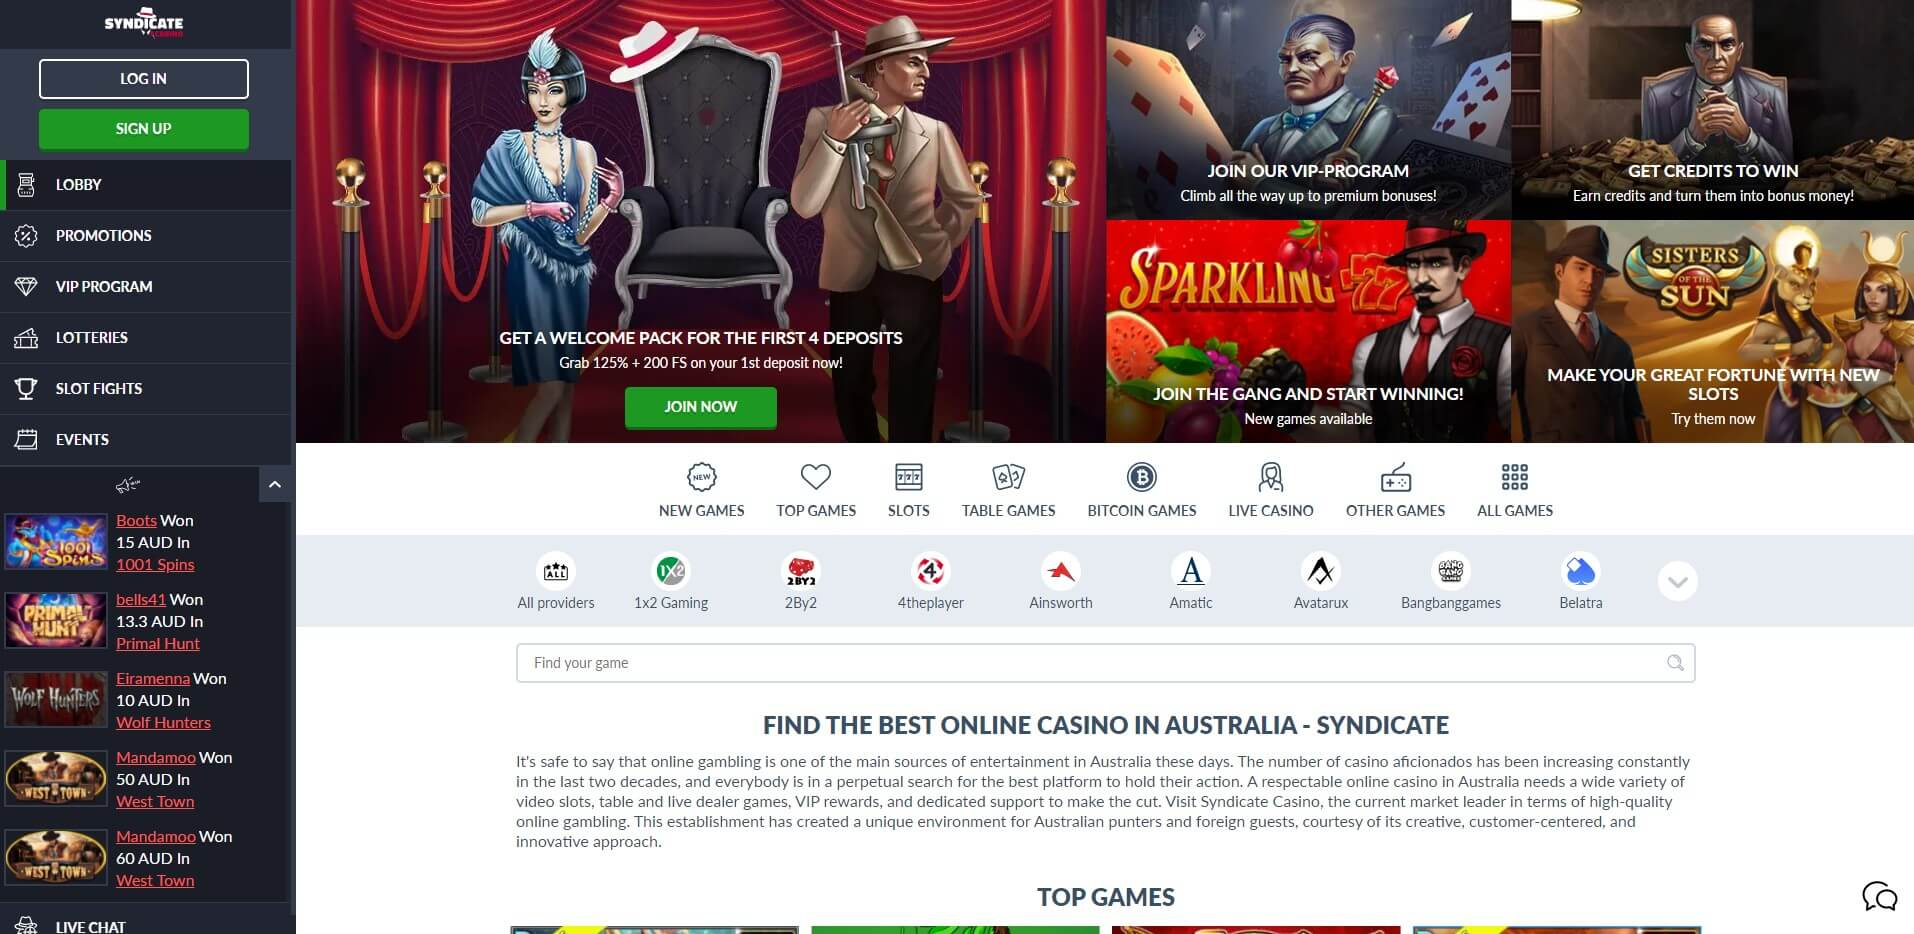 syndicate.casino - Website Review